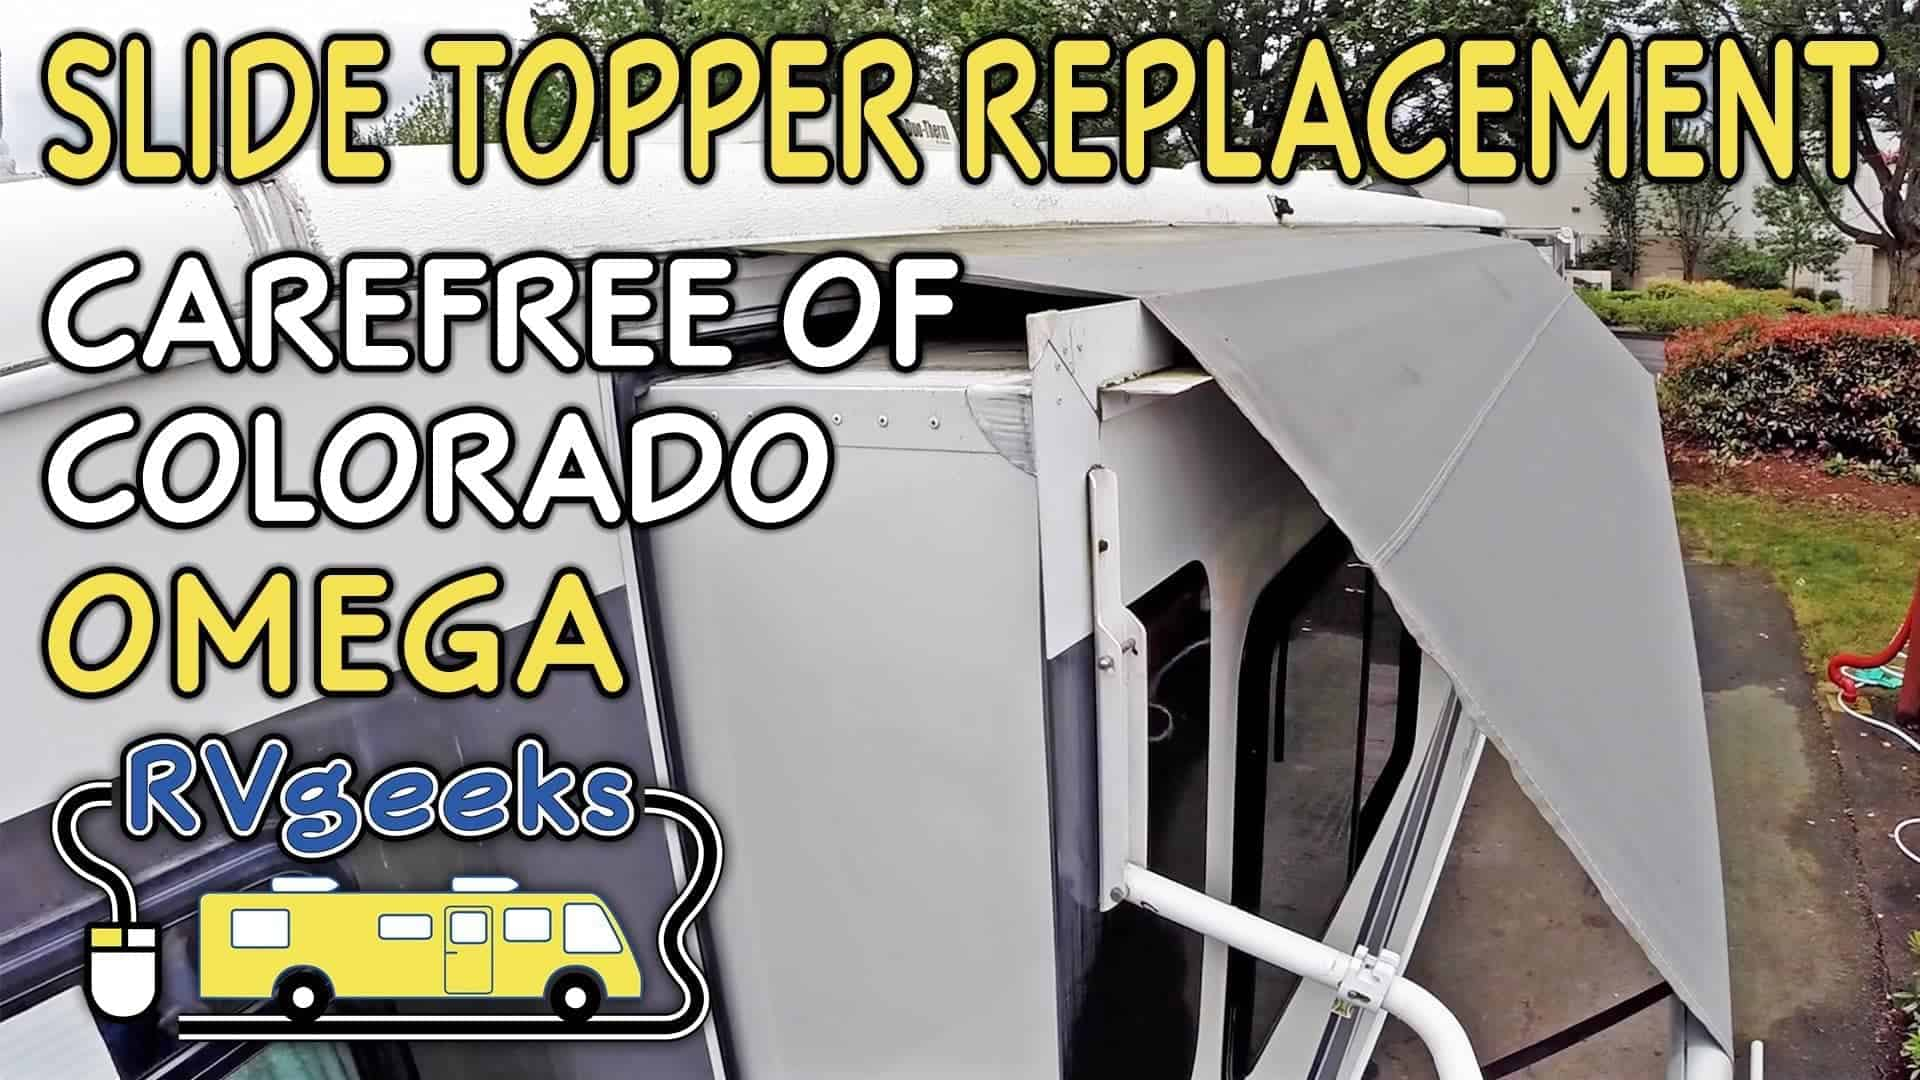 Carefree Of Colorado Omega Slide Topper Fabric Replacement